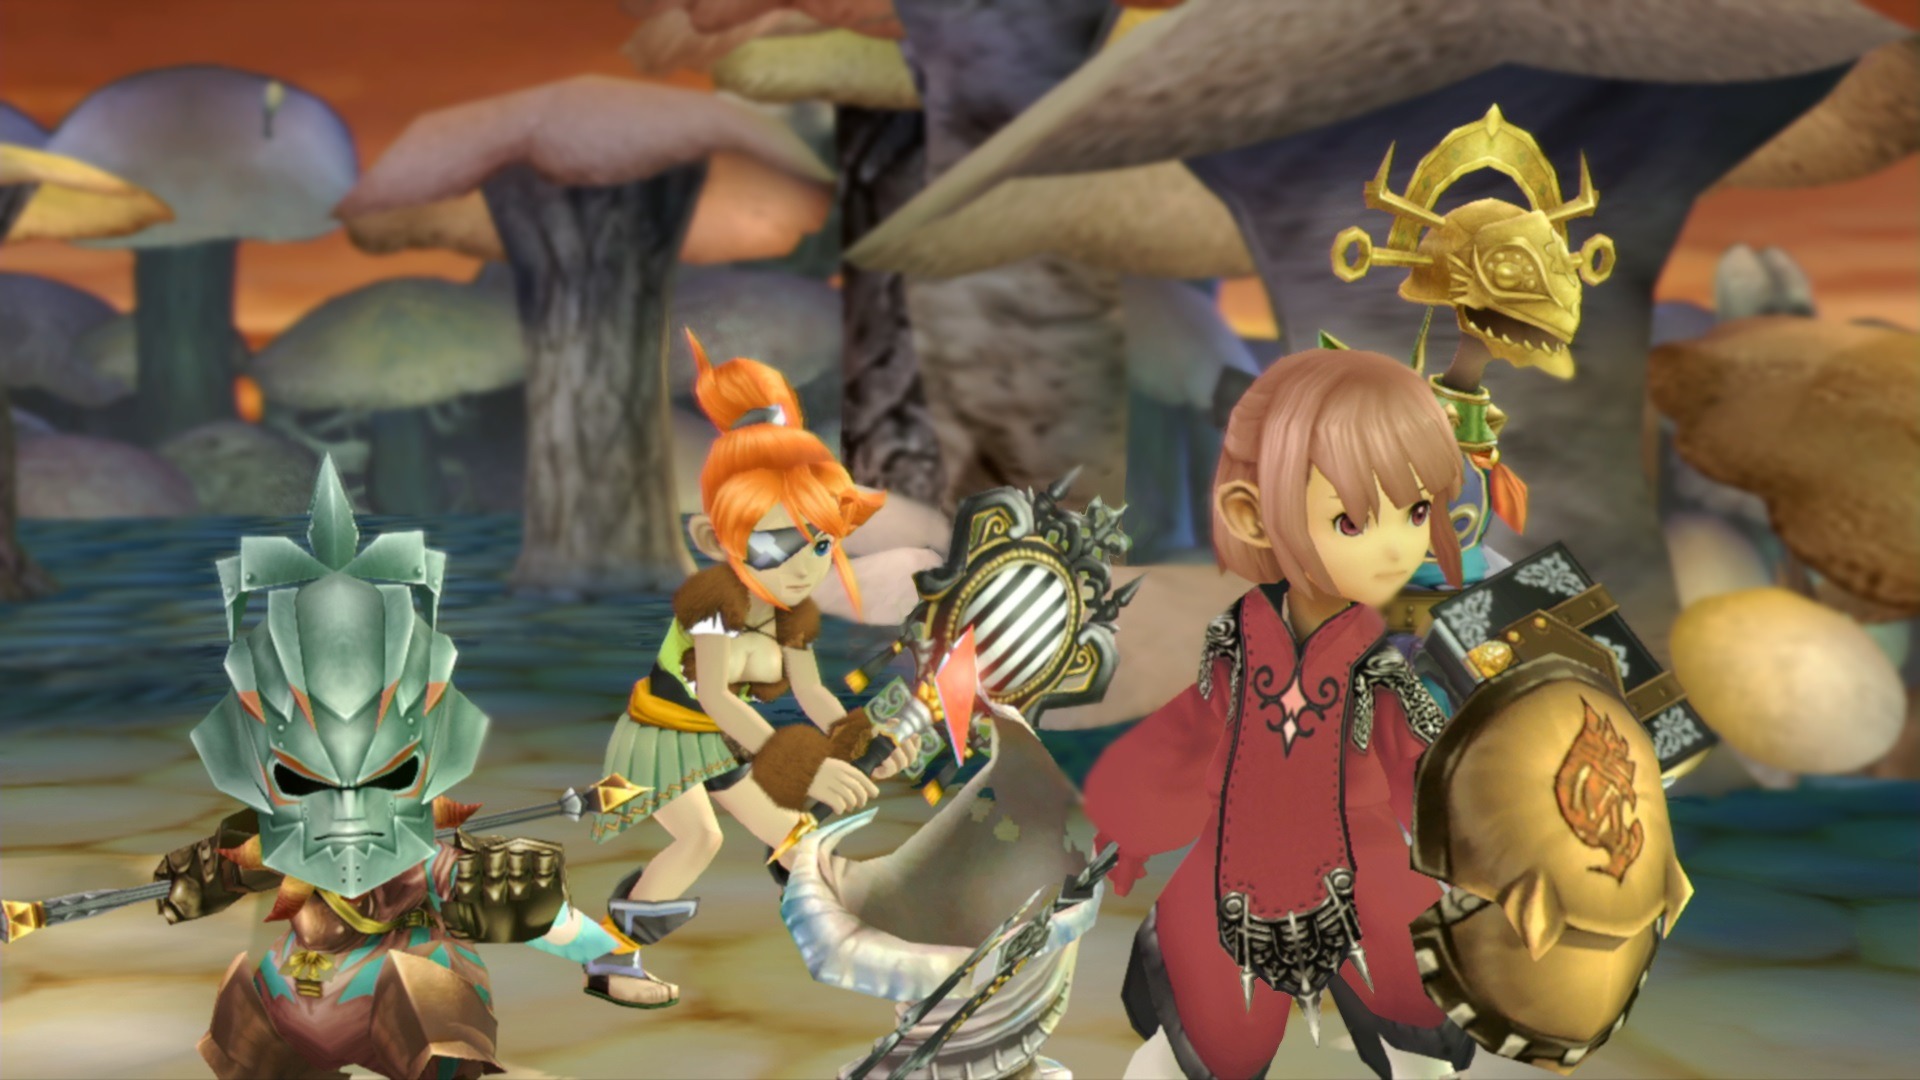 Resultado de imagen para Final Fantasy Crystal Chronicles Remastered Edition""